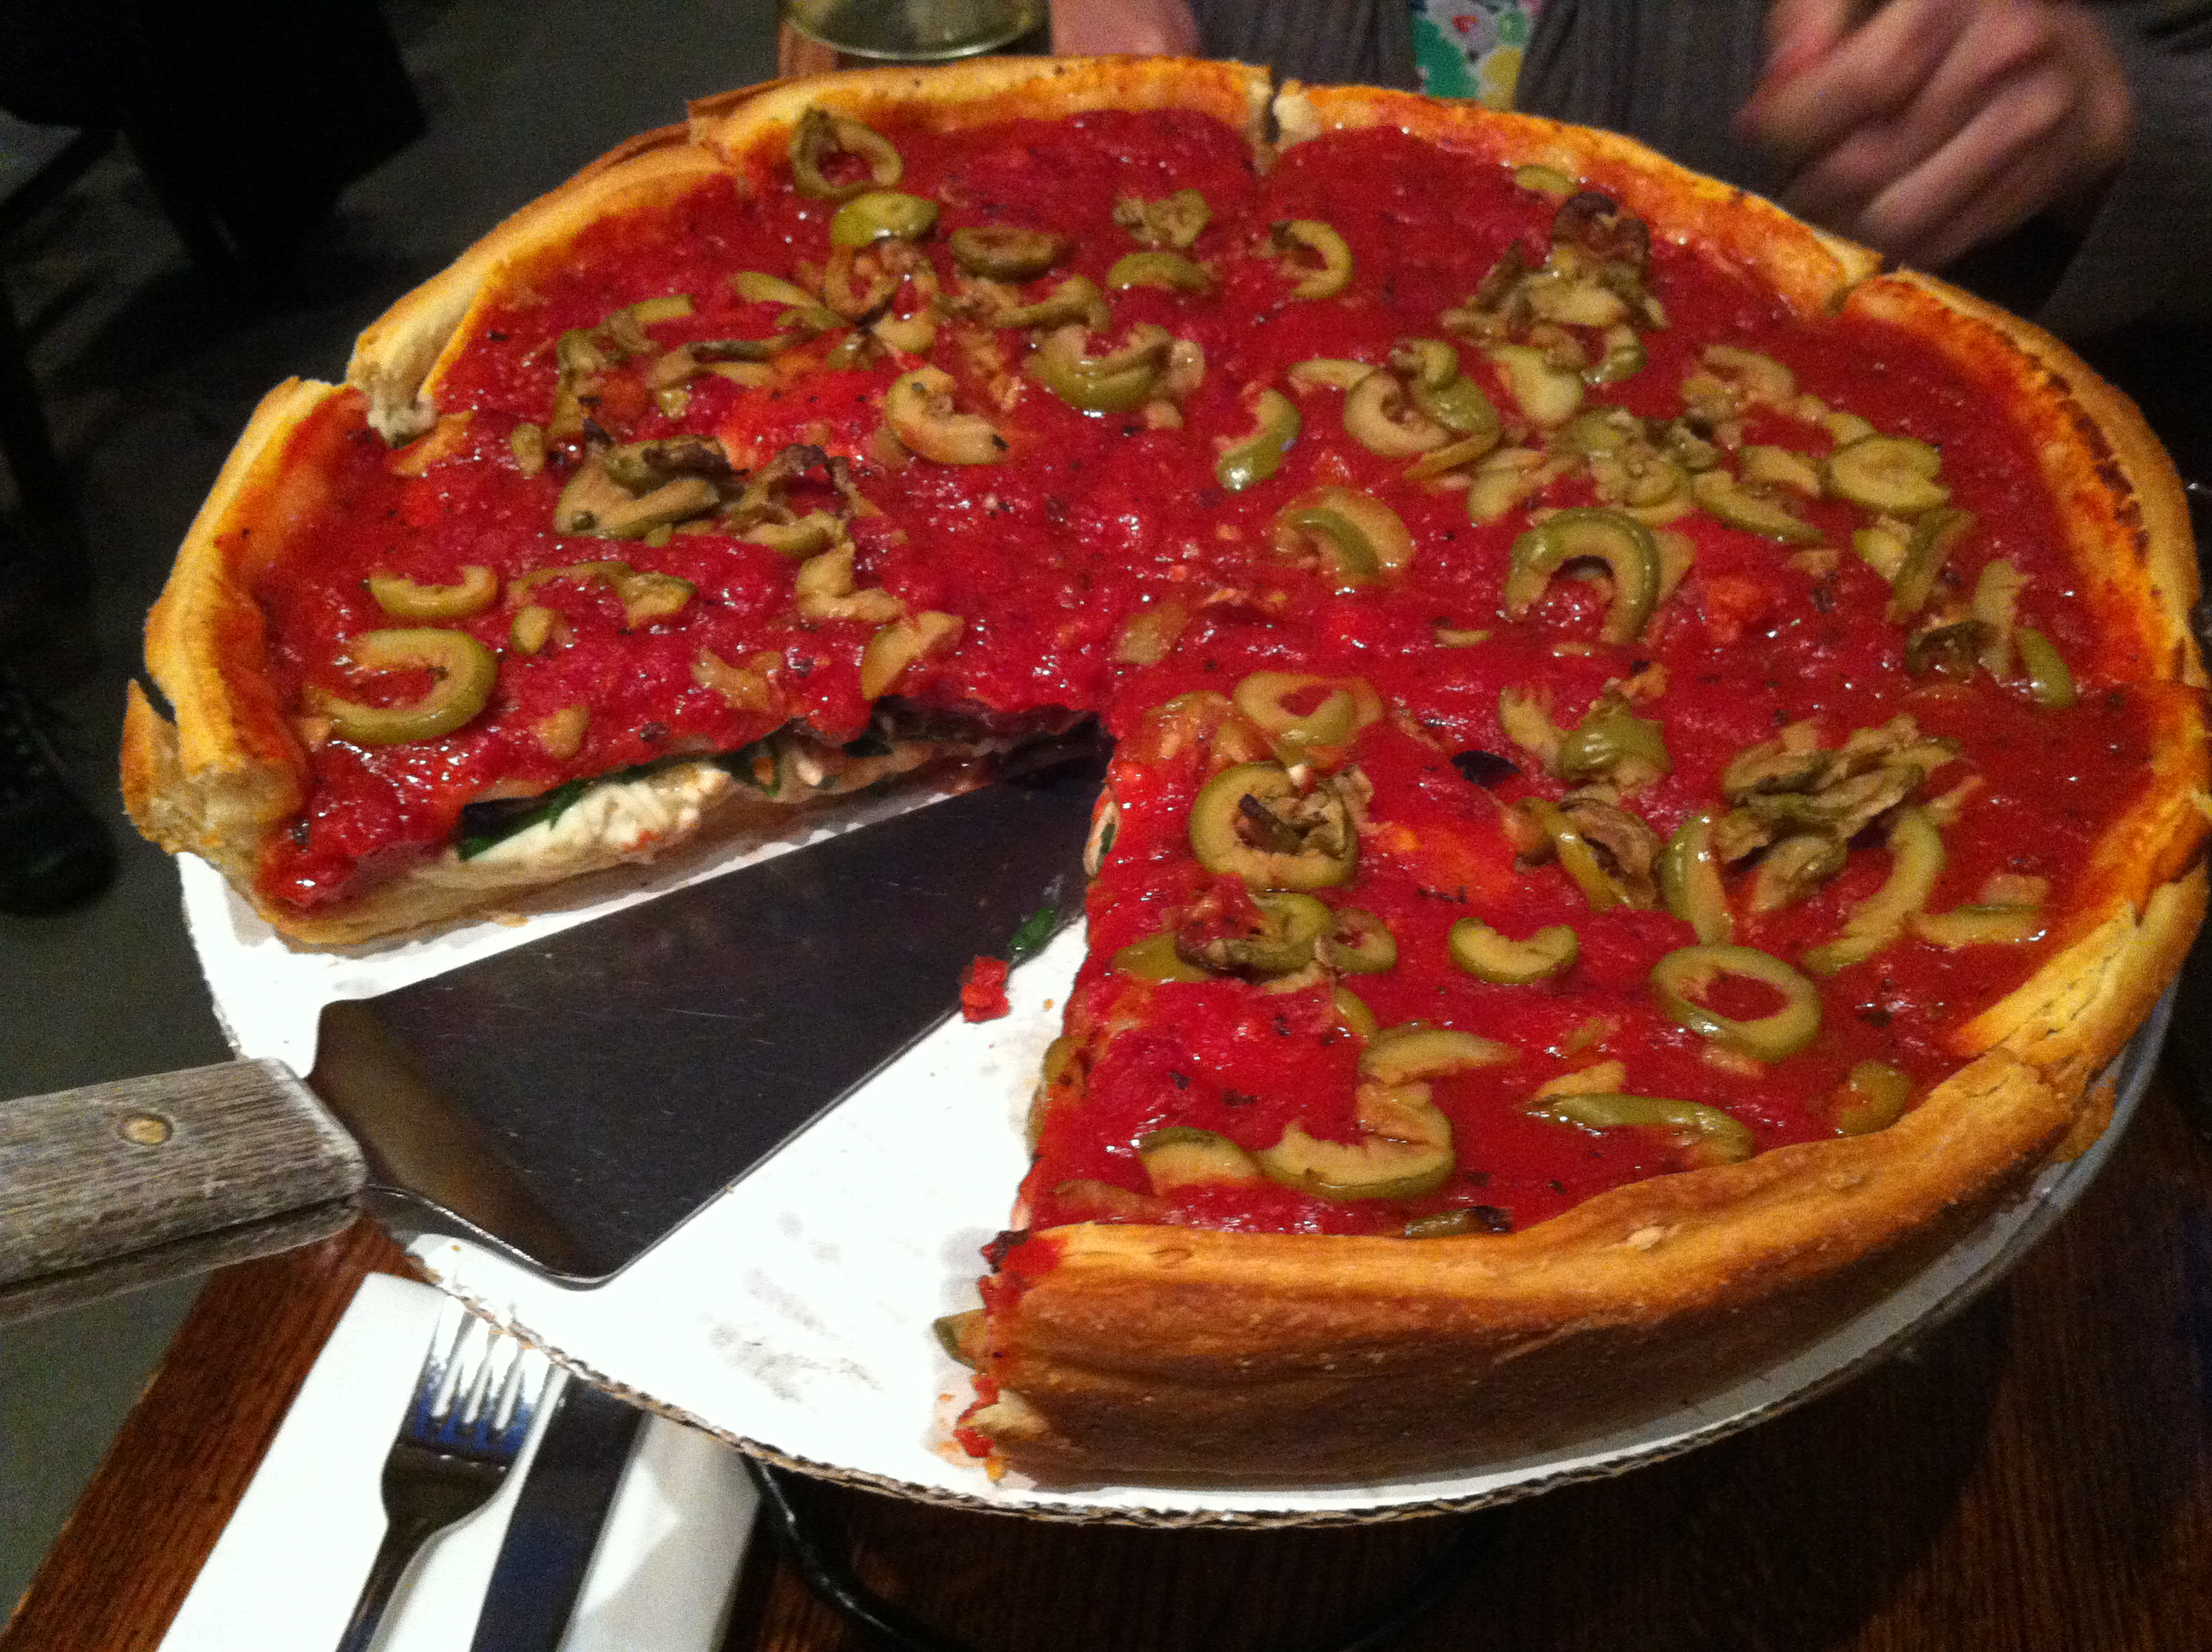 File:Paxtis Chicago Style Deep Dish Pizza.jpg - Wikimedia Commons